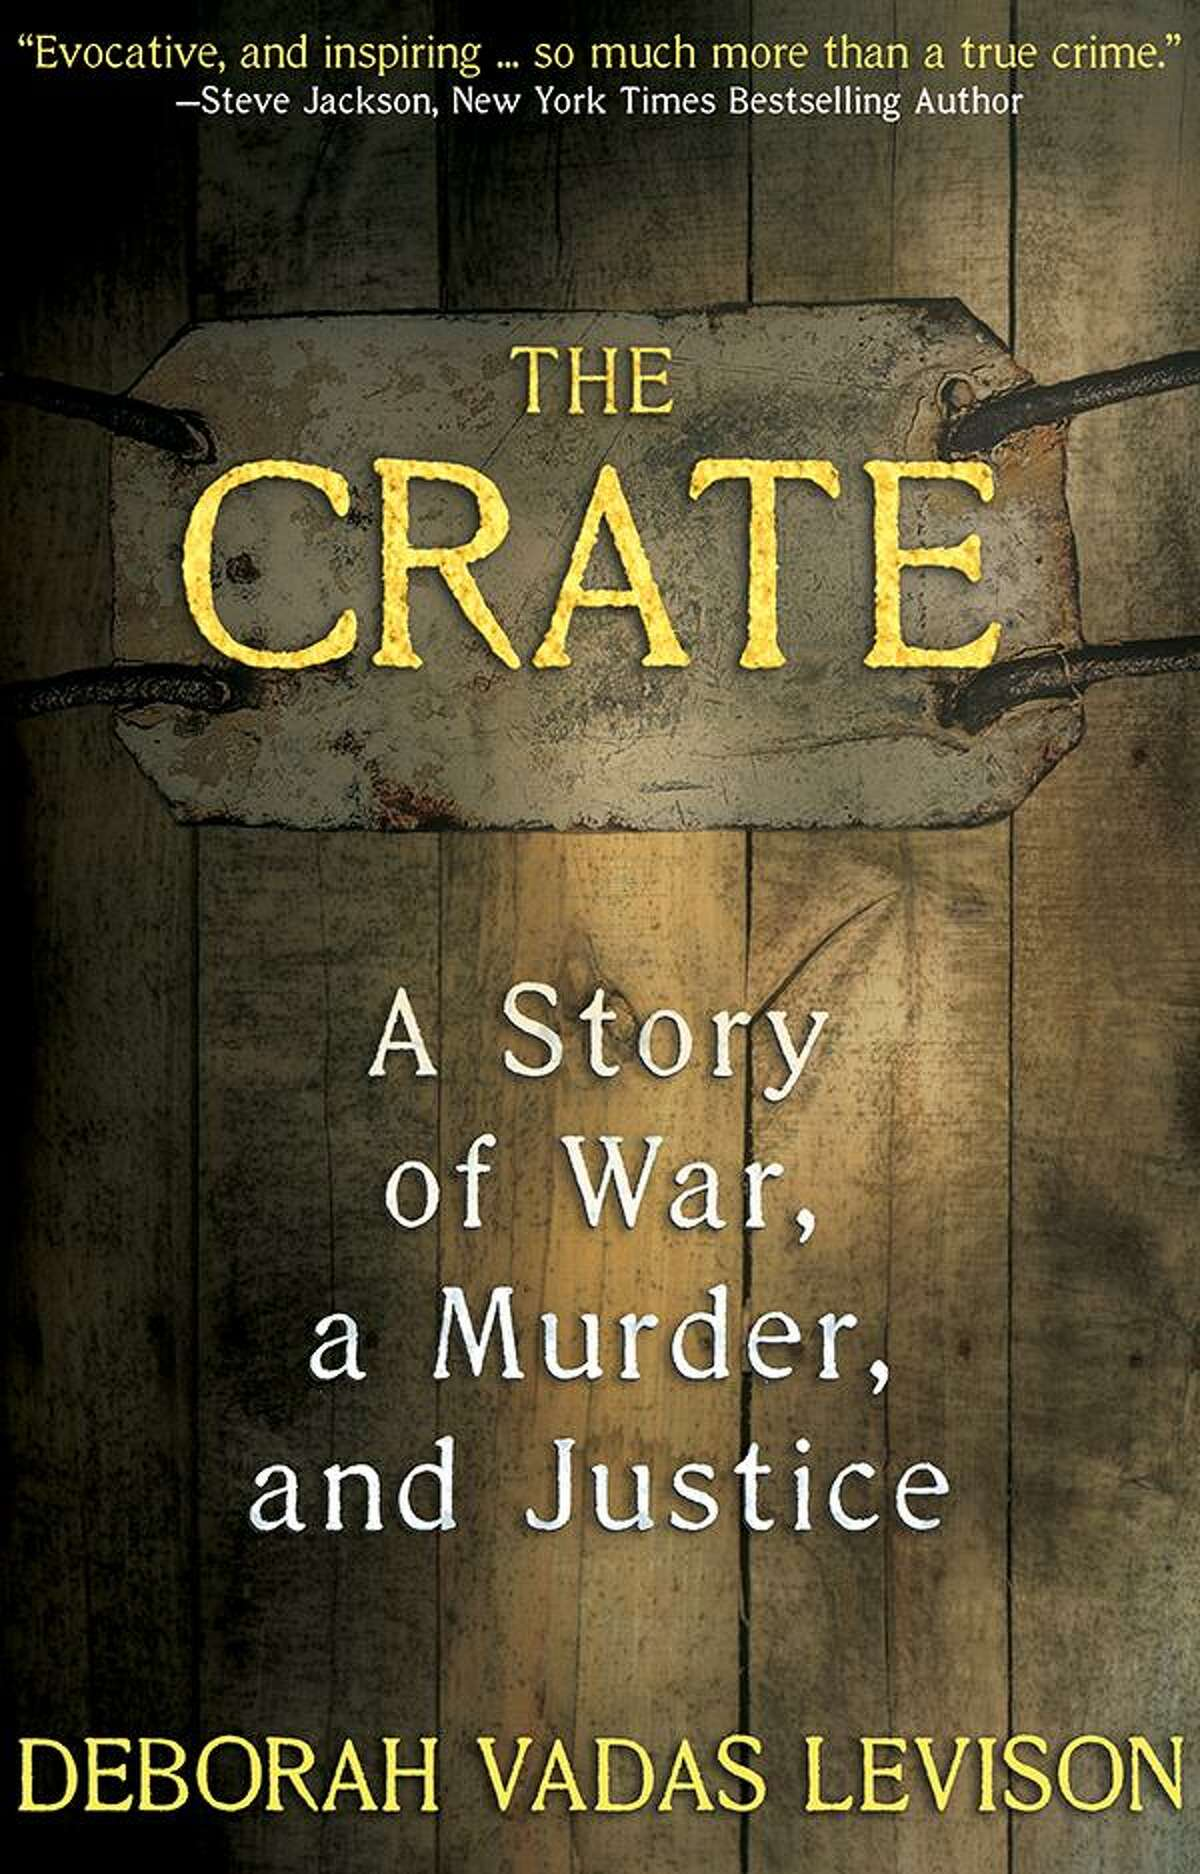 The cover of Deborah Levison's latest book, 'The Crate.'